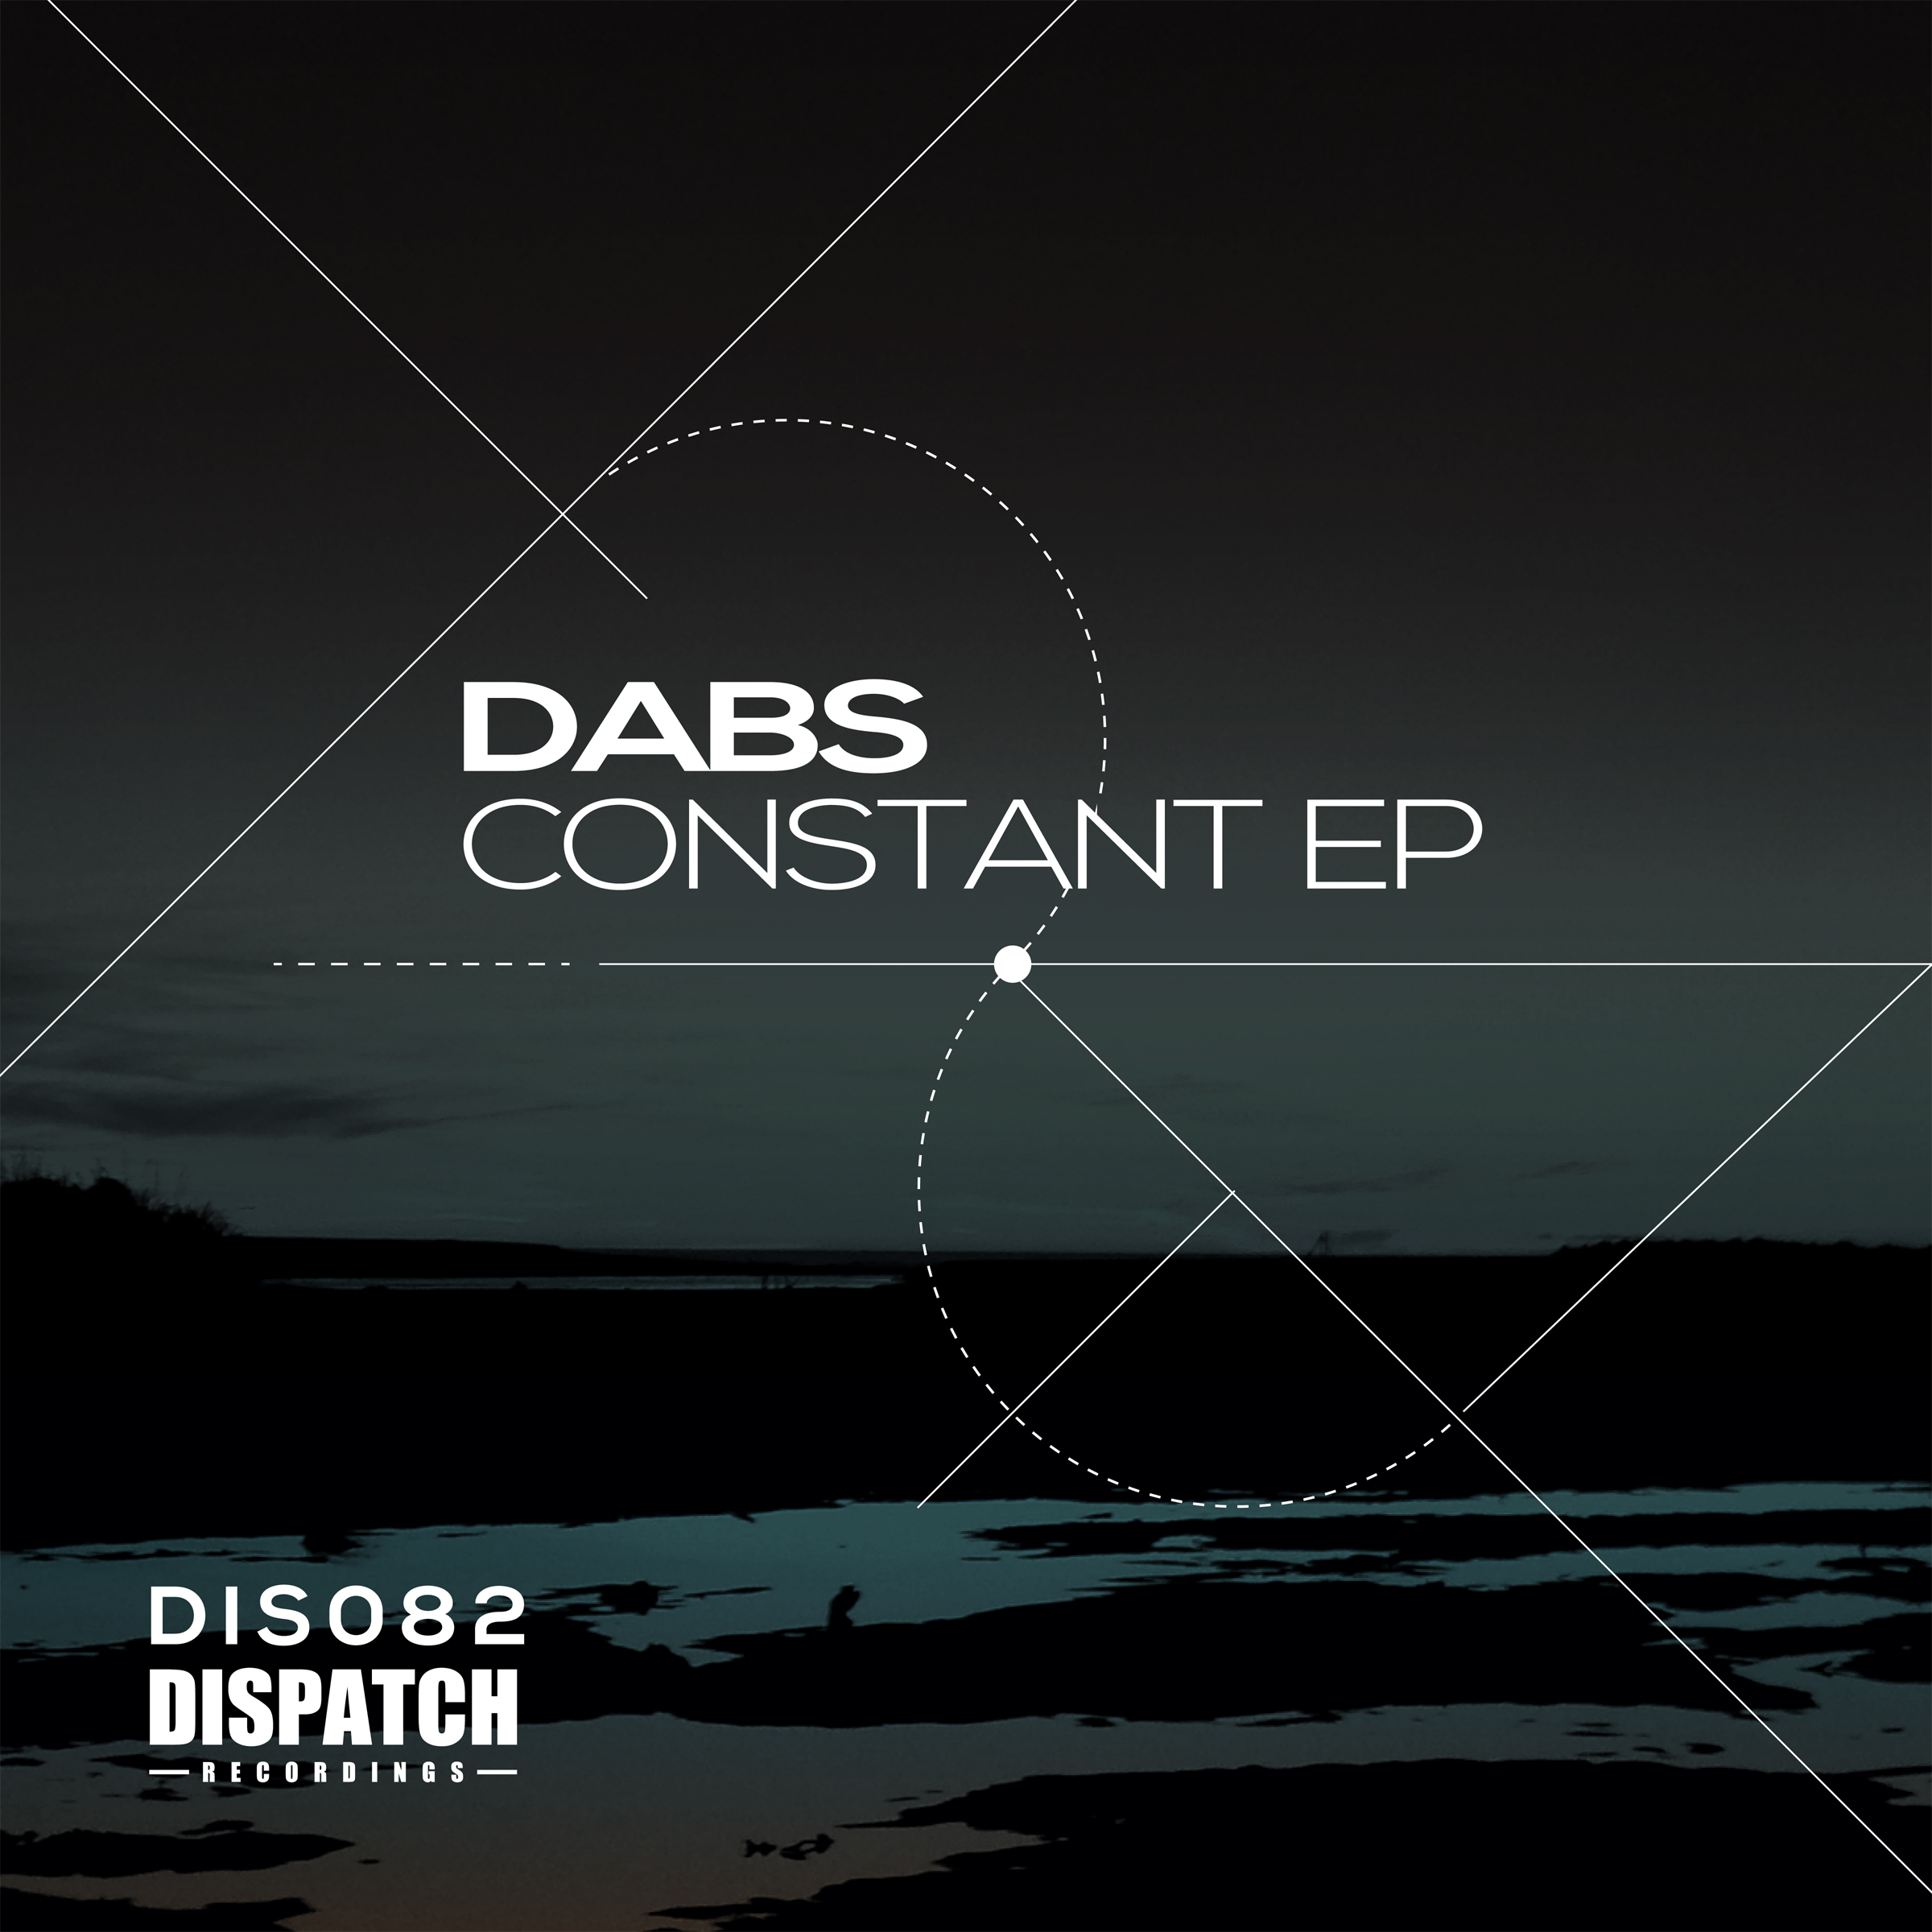 Dabs/THE CONSTANT EP 12""